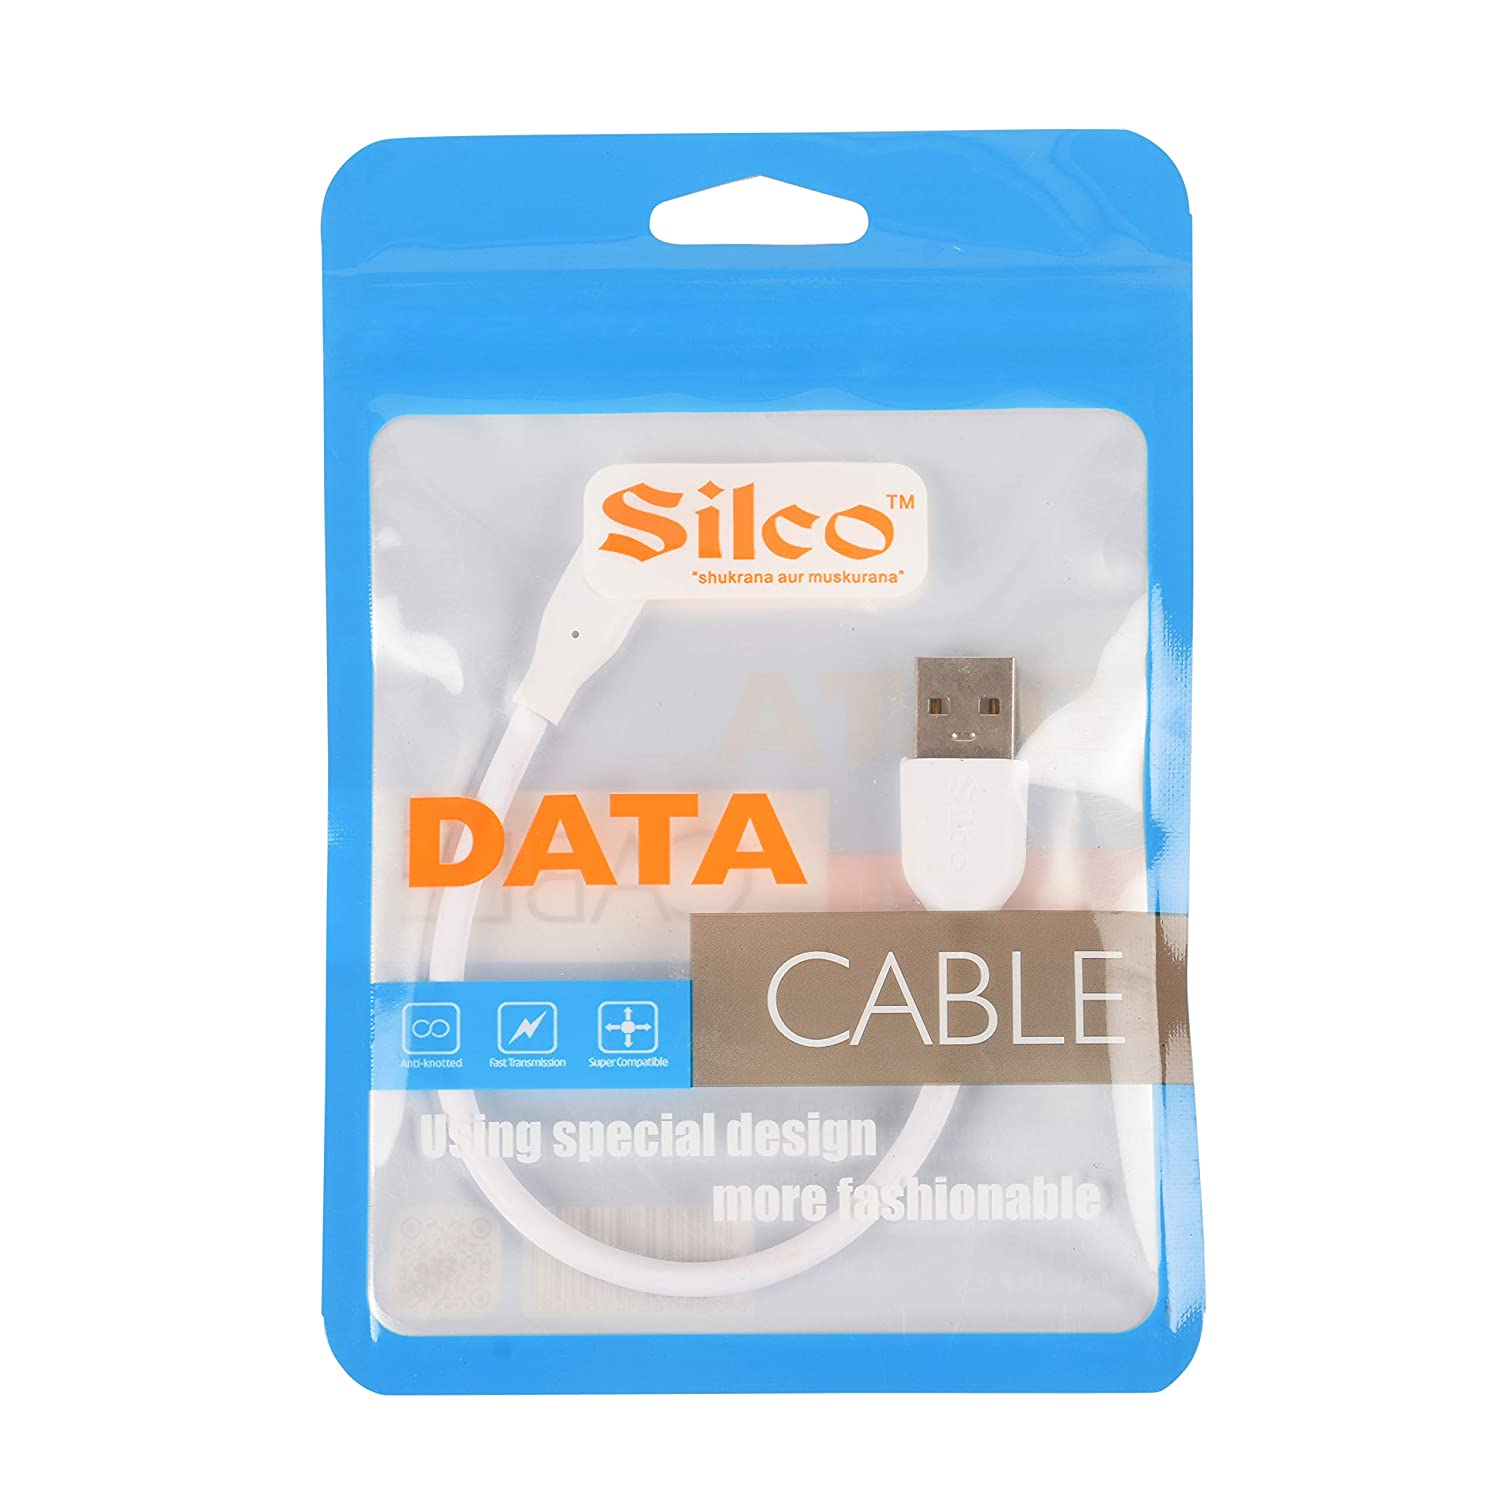 Drumstone Silco Micro-USB to USB Cable Simply plug to rapidly charge and sync all devices